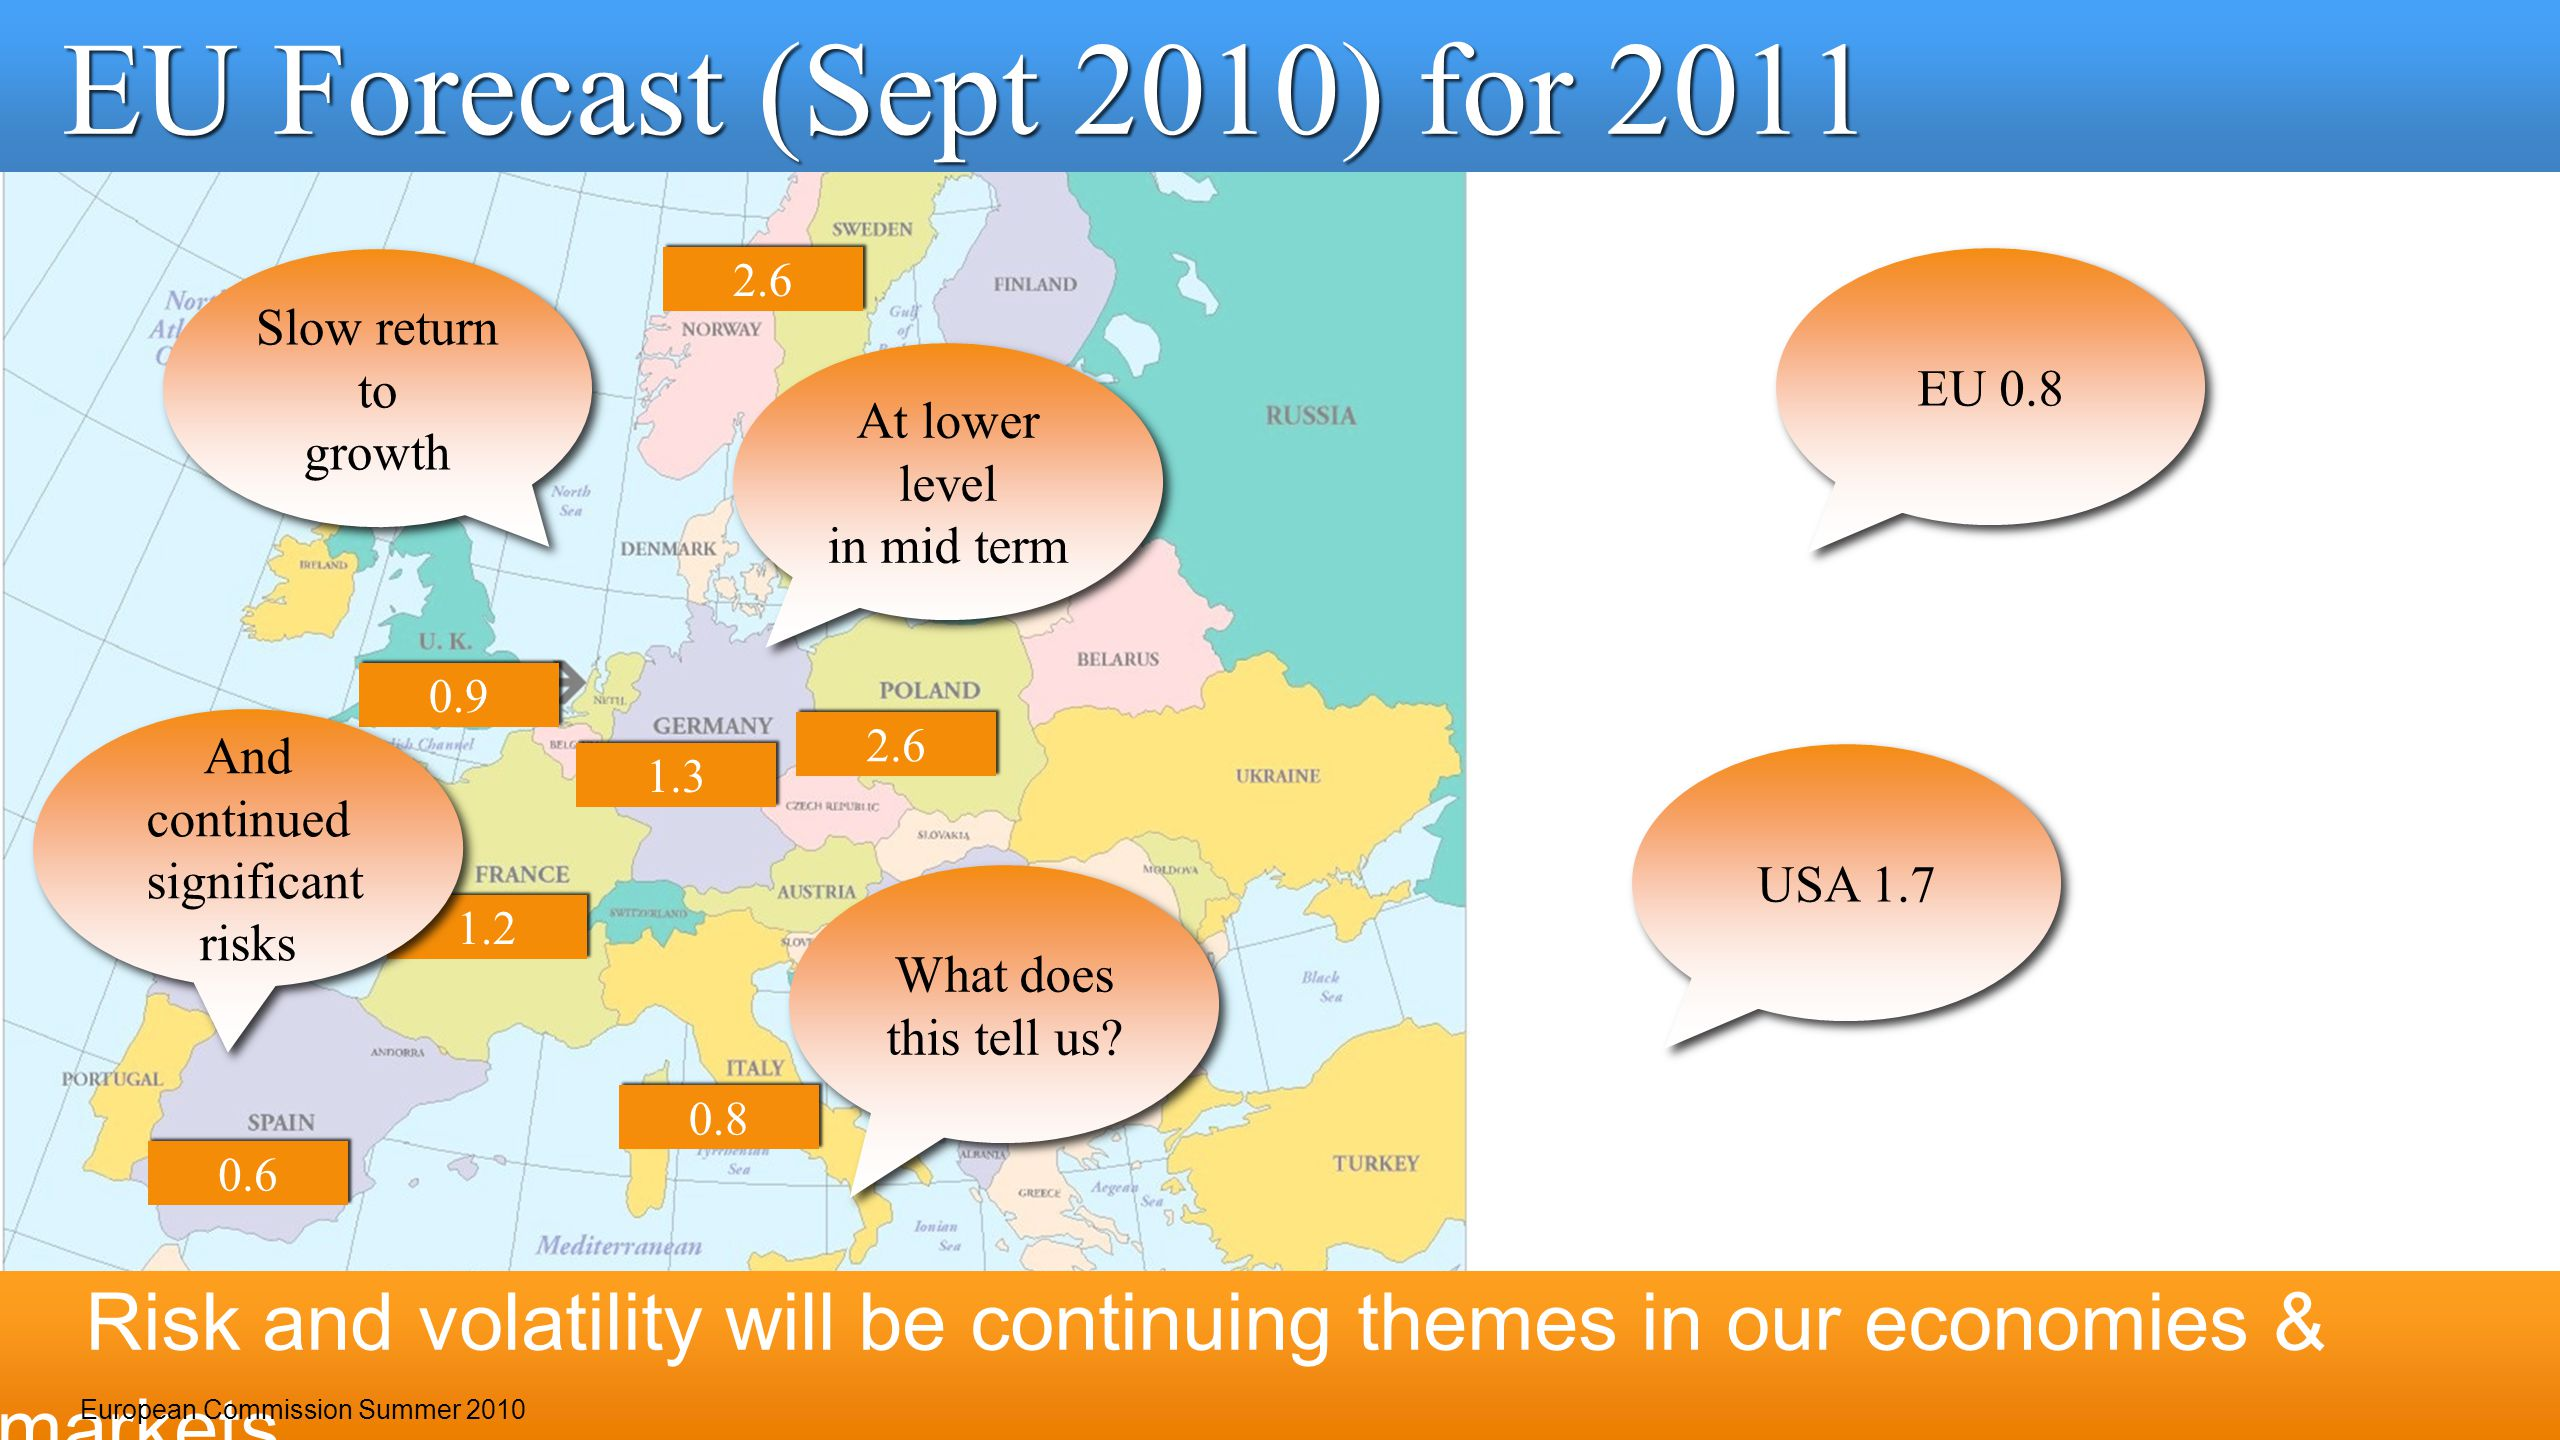 0.6 1.3 1.2 0.8 2.6 0.9 Risk and volatility will be continuing themes in our economies & markets 7 EU Forecast (Sept 2010) for 2011 European Commissio